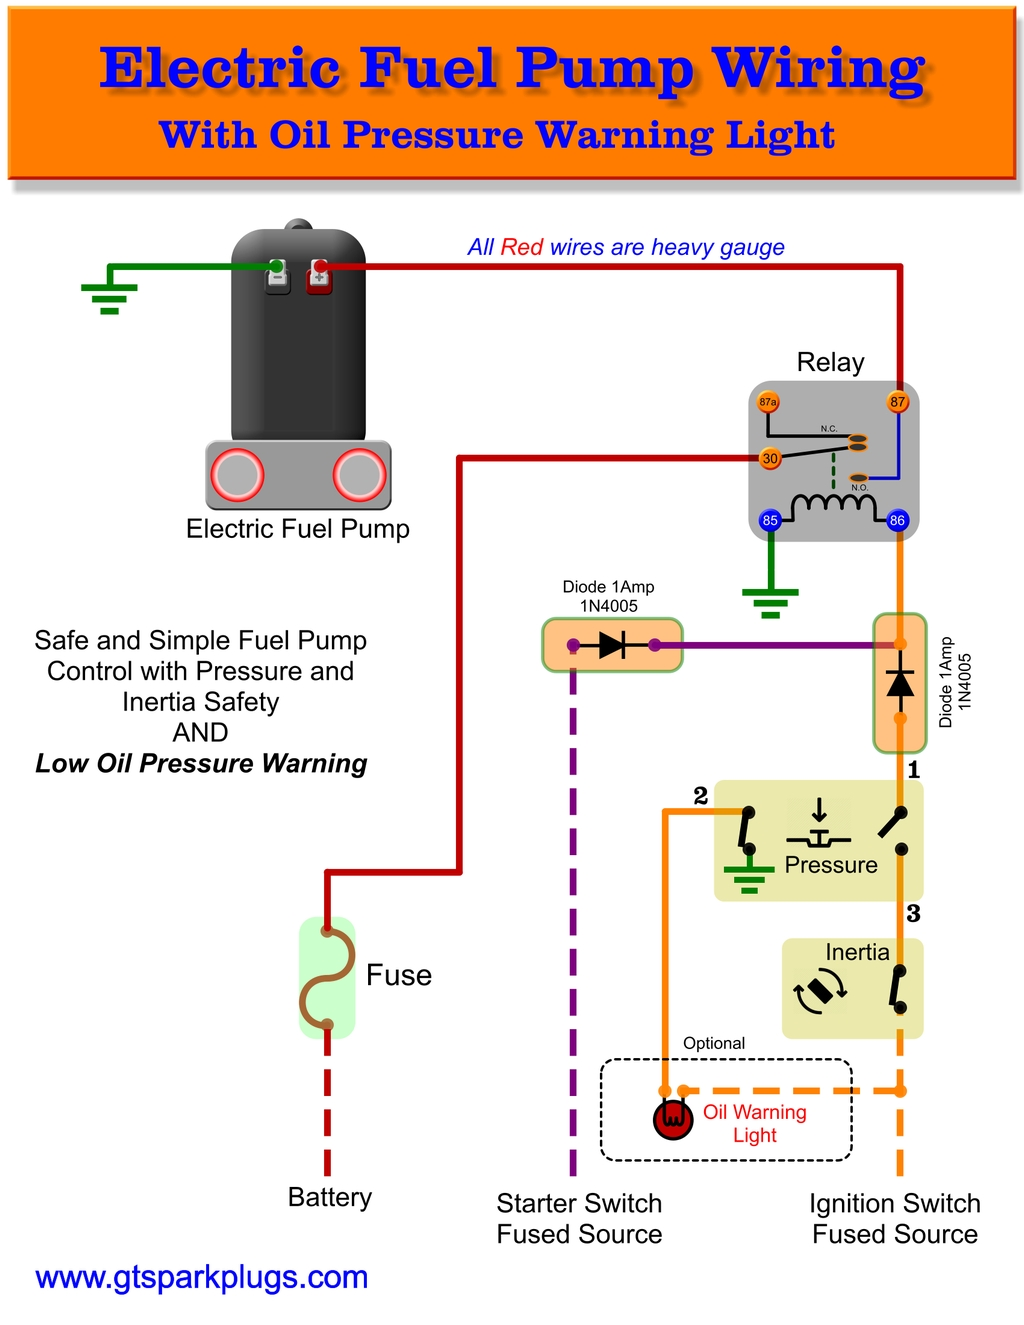 electric fuel pump wiring diagram gtsparkplugs rh gtsparkplugs com electrical wiring diagram for water pump motor set electric fire pump wiring diagram